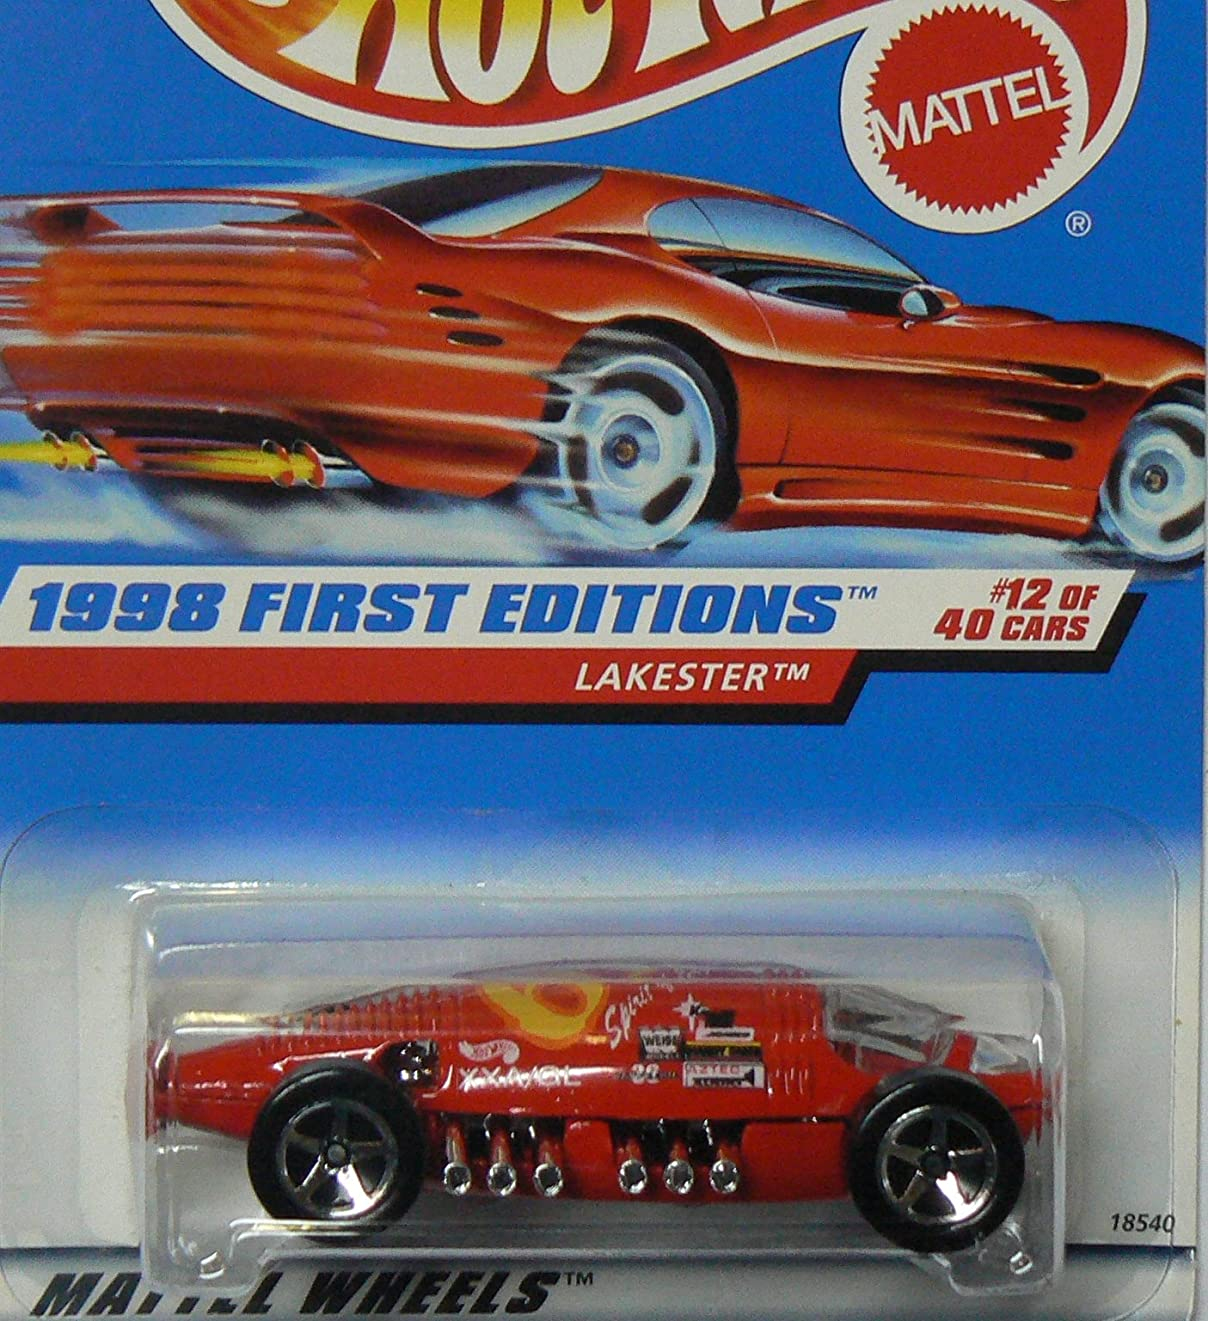 経歴鷹アナリストHOT WHEELS Lakester 647 1998 First Editions ON RED CARD